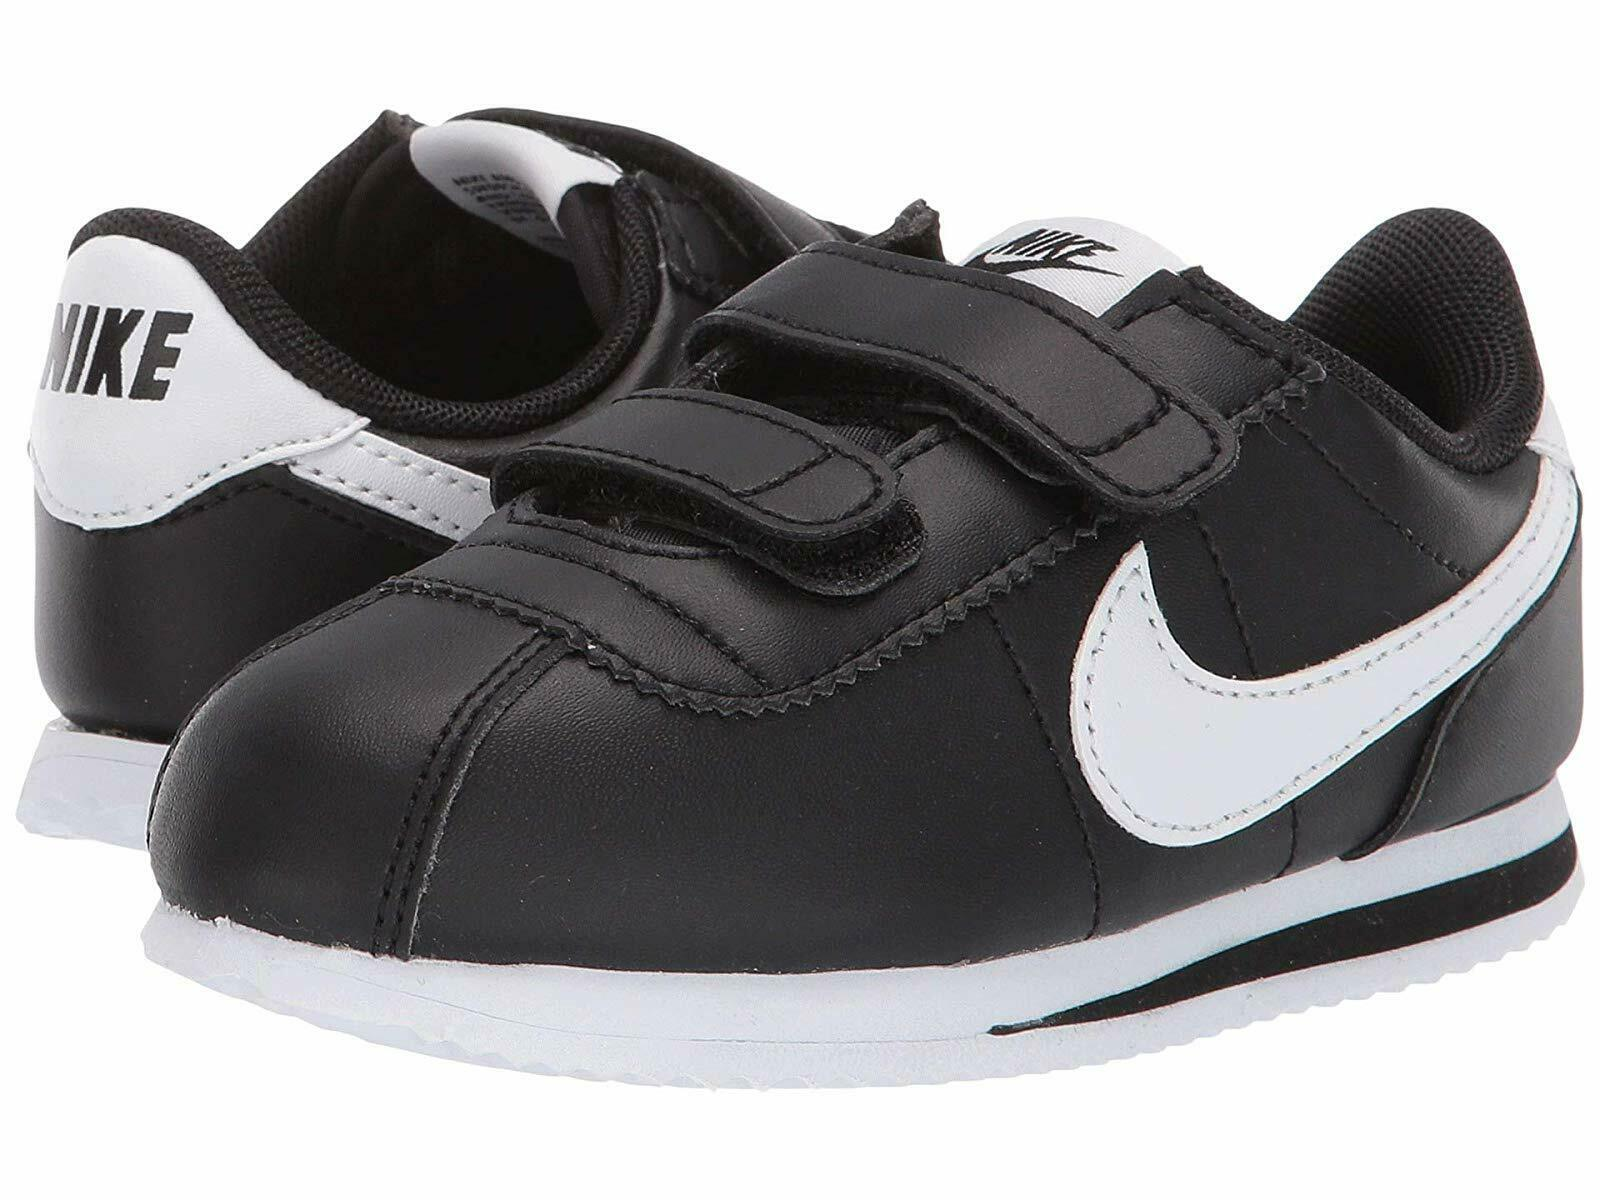 Boy's Sneakers & Athletic Shoes Nike Kids Cortez Basic SL (Infant/Toddler)